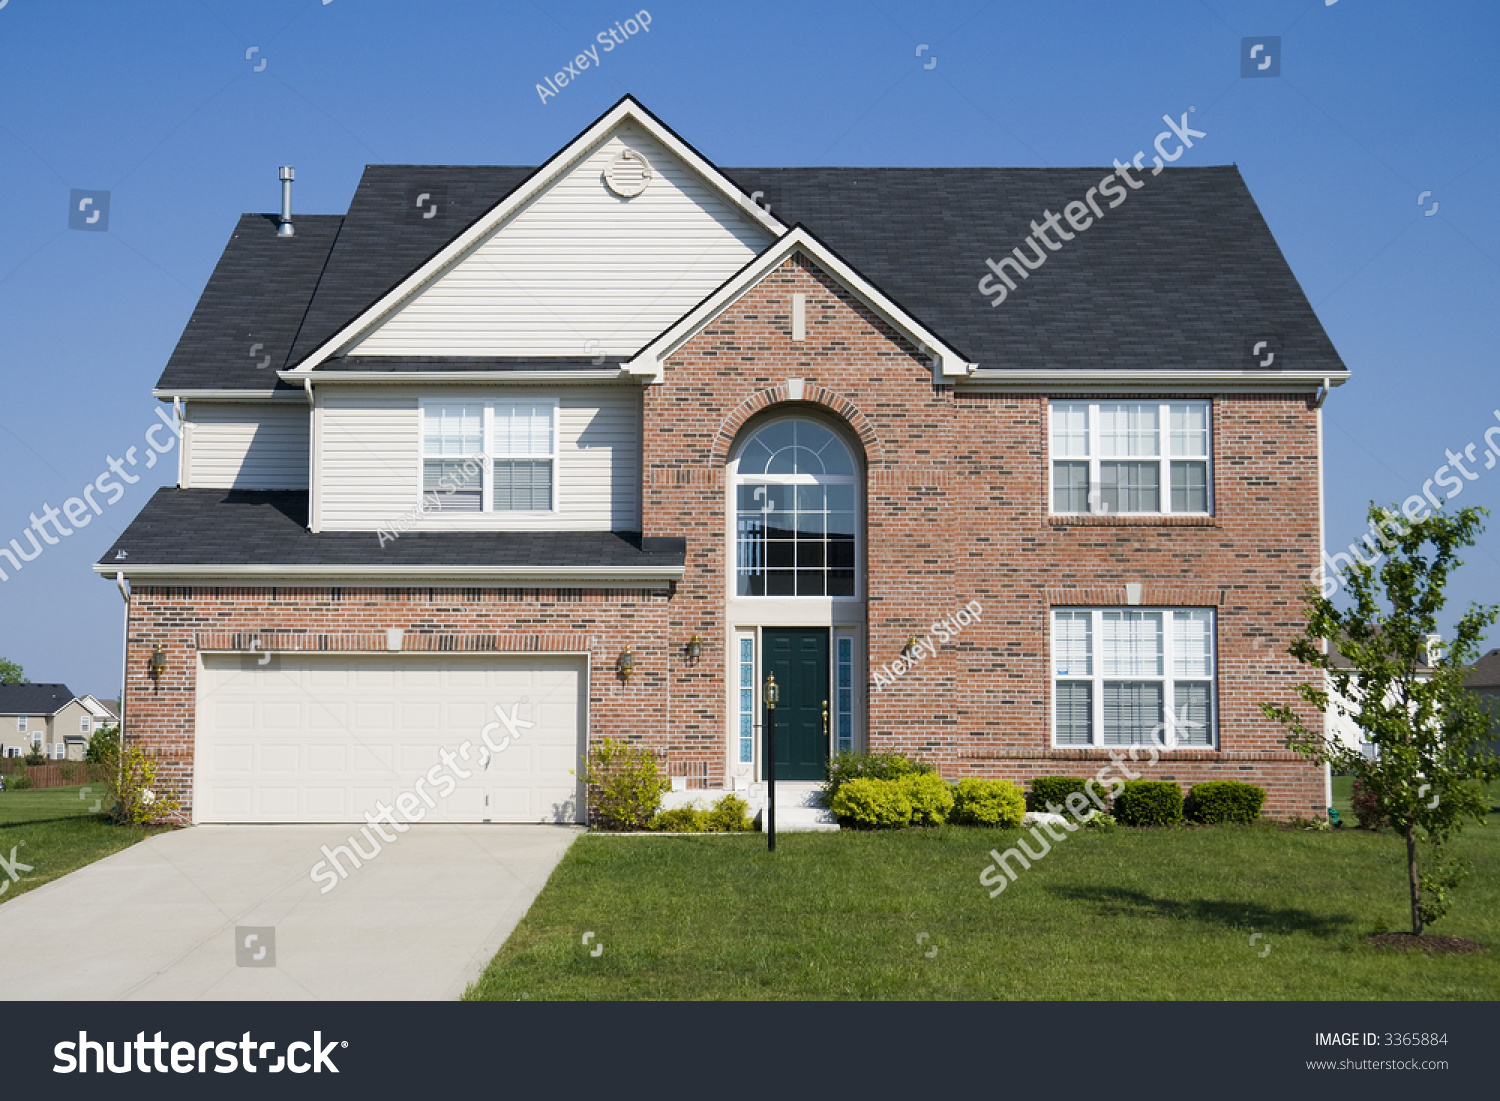 Typical Suburban Single Family House Midwest Stock Photo